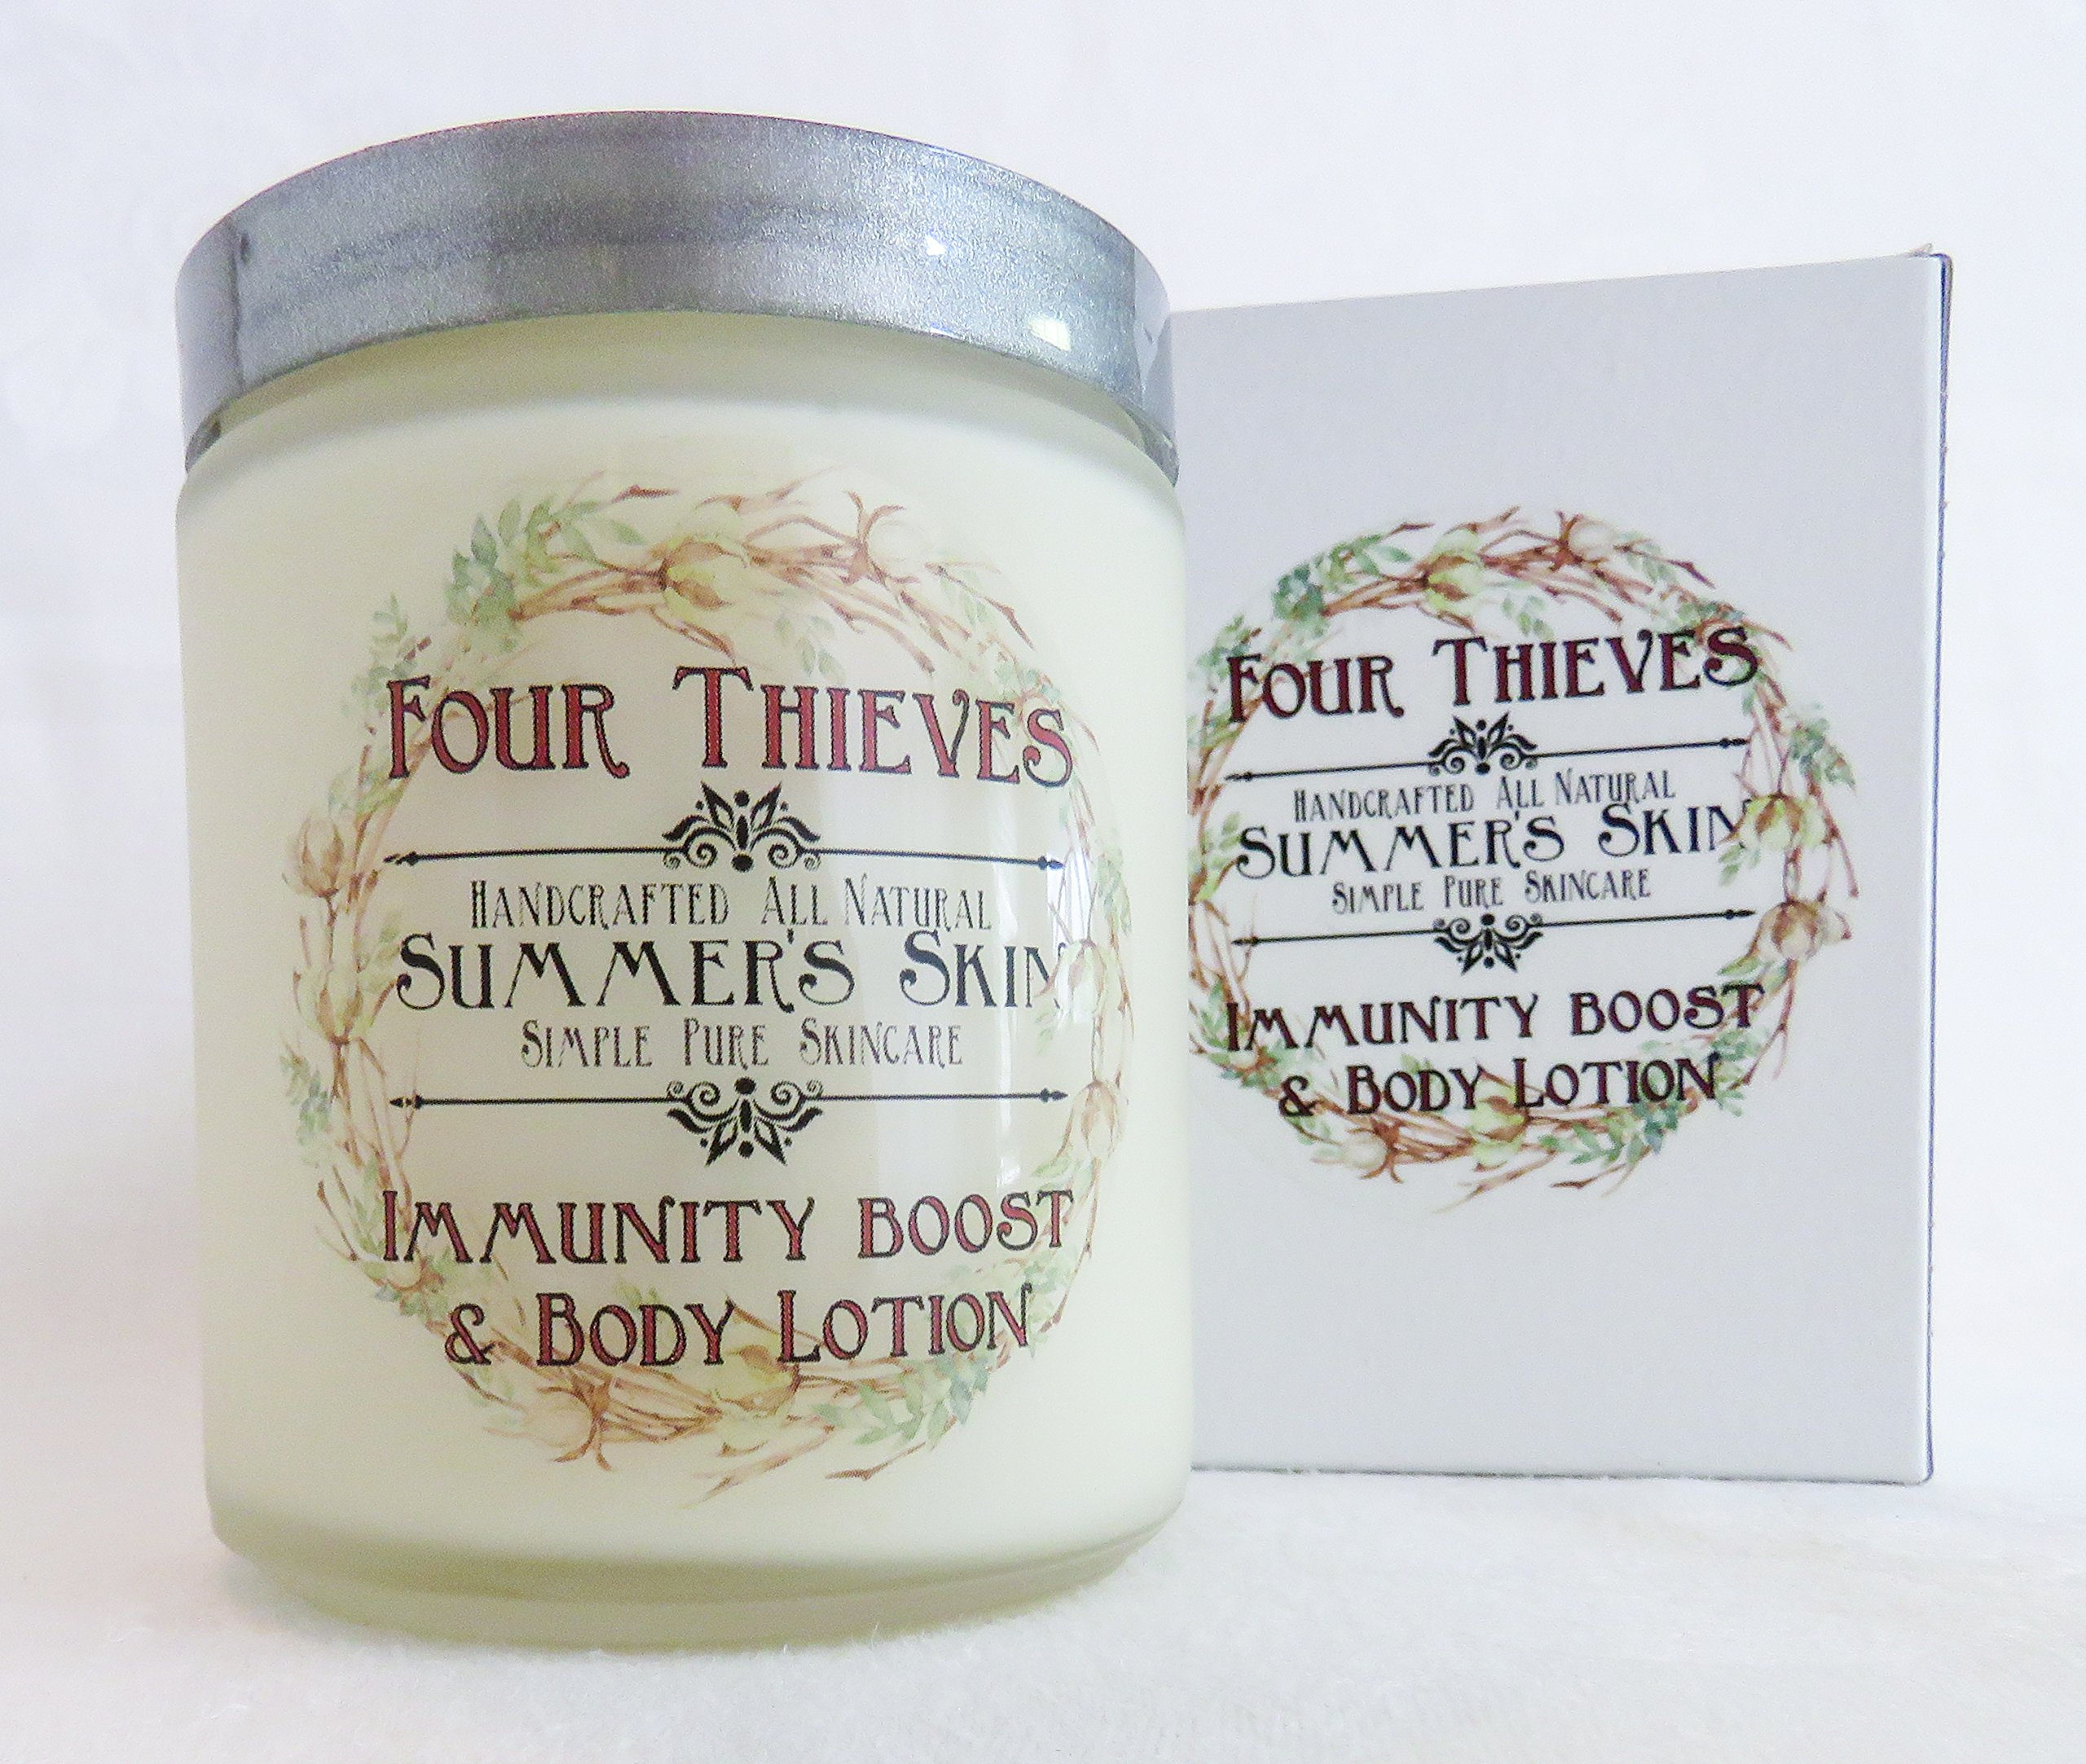 Four Thieves Immunity Boosting Body Lotion by Summer's Skin